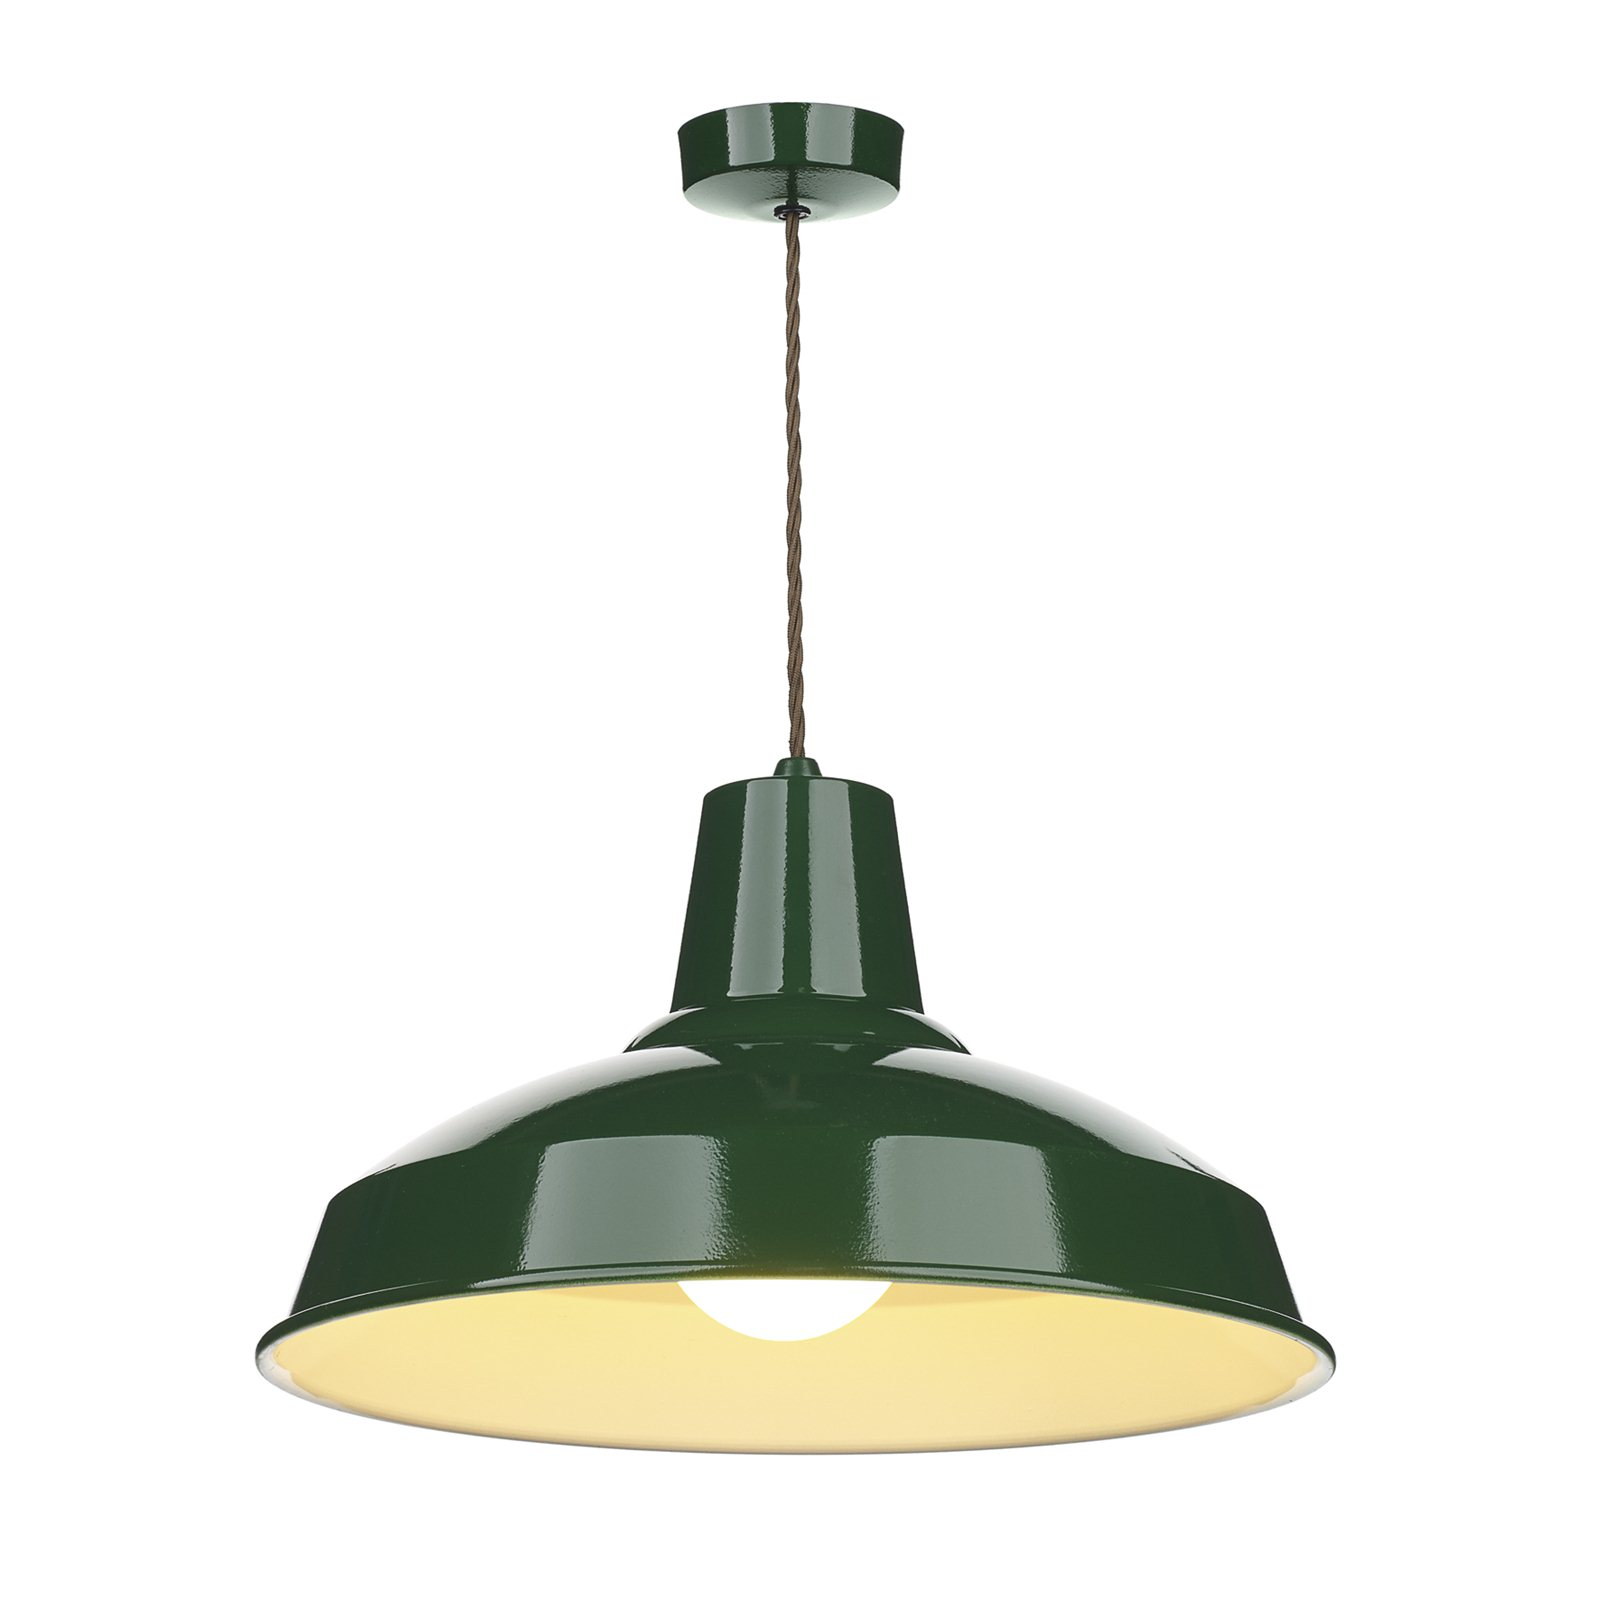 Lights For Bedroom Ceiling Hicks And Hicks Calstock Pendant Light British Racing